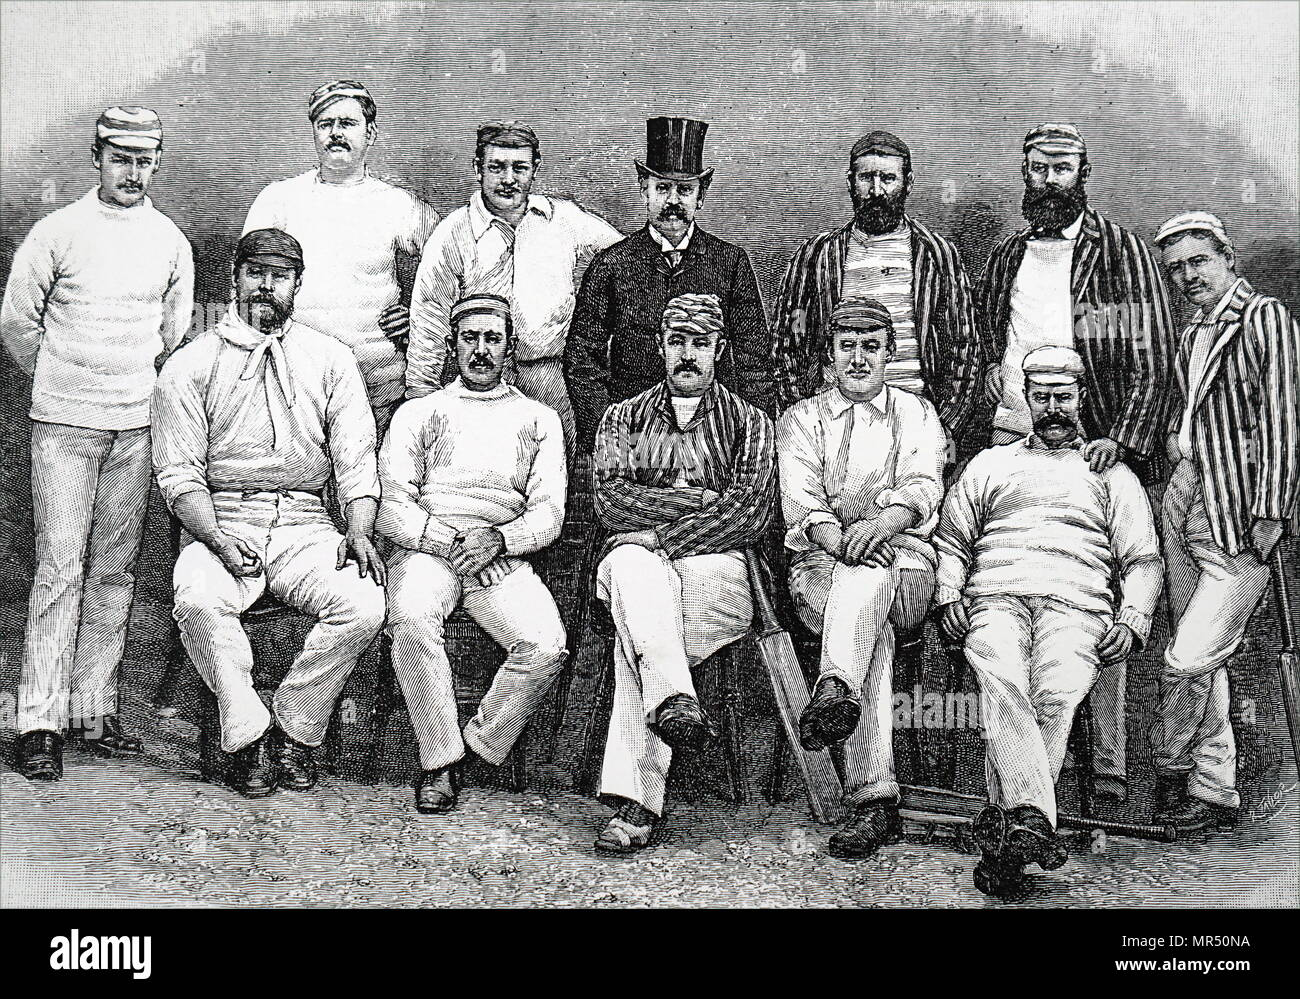 Illustration depicting the Australian touring cricket team of 1888. Seated left to right: G. J. Bonnor, C. T. B. Turnell, P. S. MacDonnell (Captain), H. Trott, A. C. Bannerman. Standing, left to right: F. J. Ferris, A. H. Jarvis, J. Worrall, C. W. Beal (Manager), J. M. C. Blackham, H. F. Boyle, J. Edwards. Dated 19th century - Stock Image